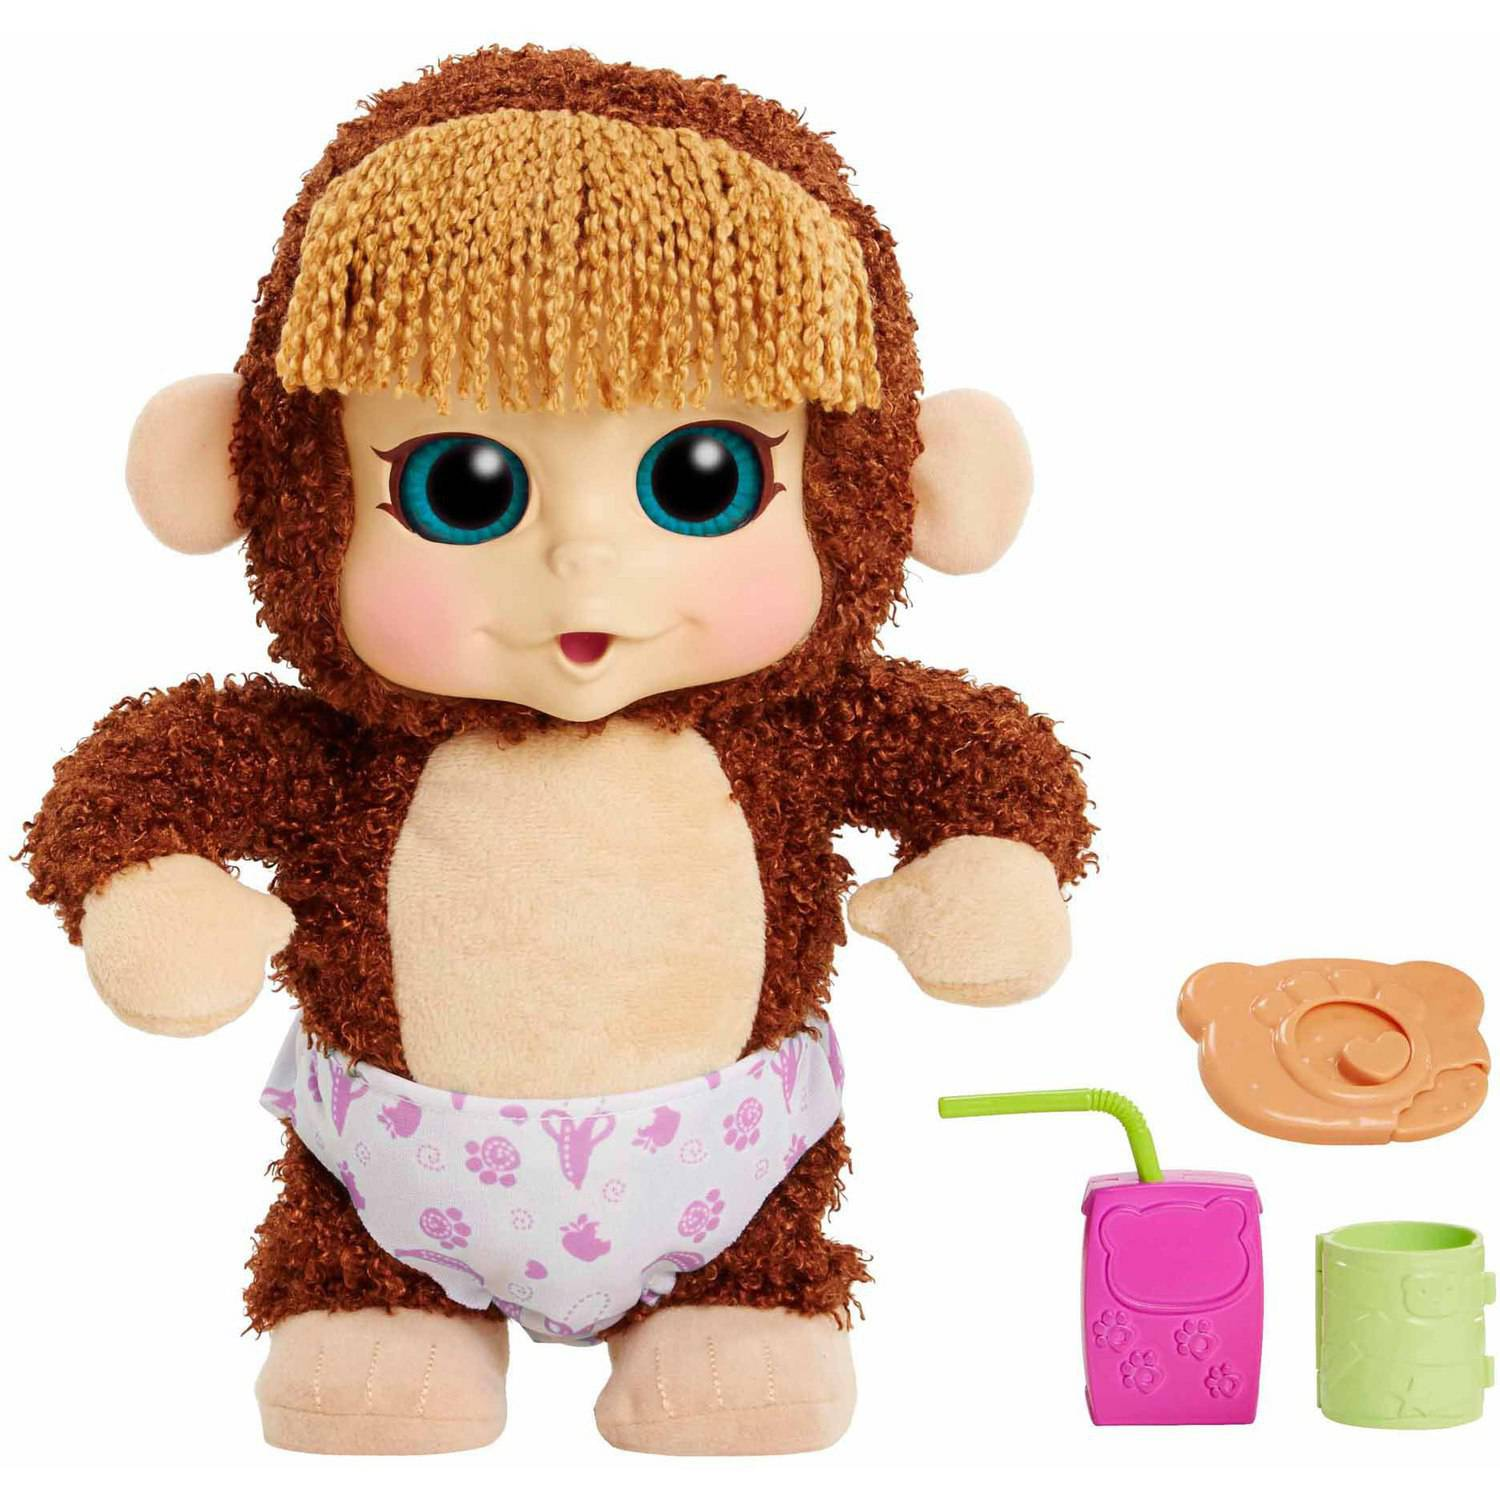 Animal Babies Feature Monkey, Jumpin Lil Monkeys, Girl